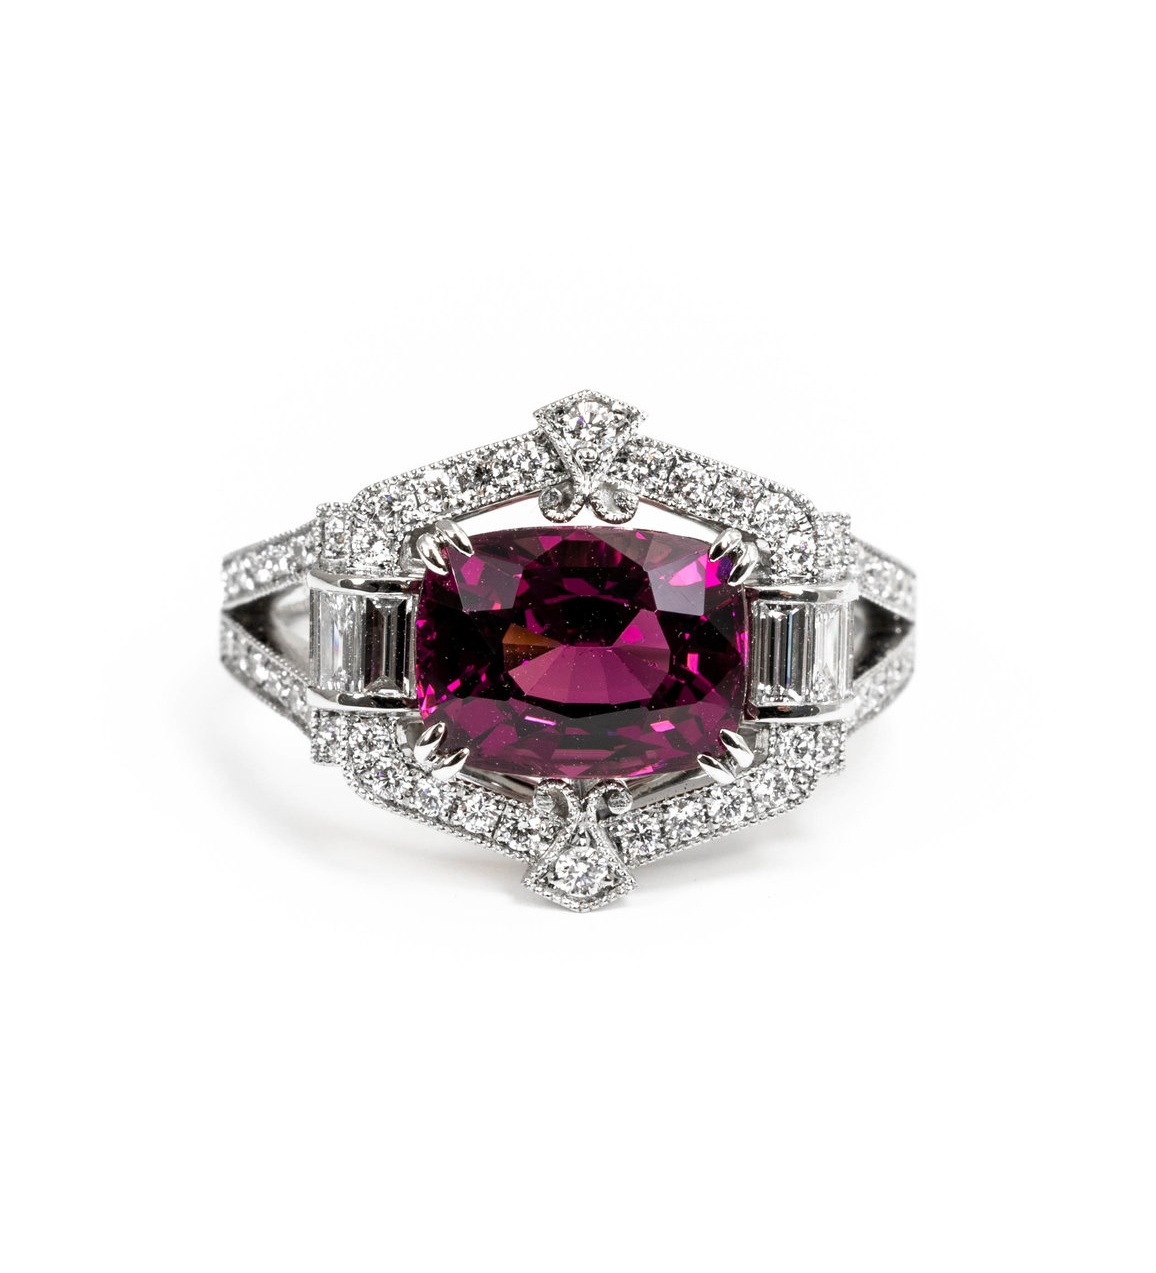 3.08ct grape garnet in Art Deco style mount. Made in Chichester, England.